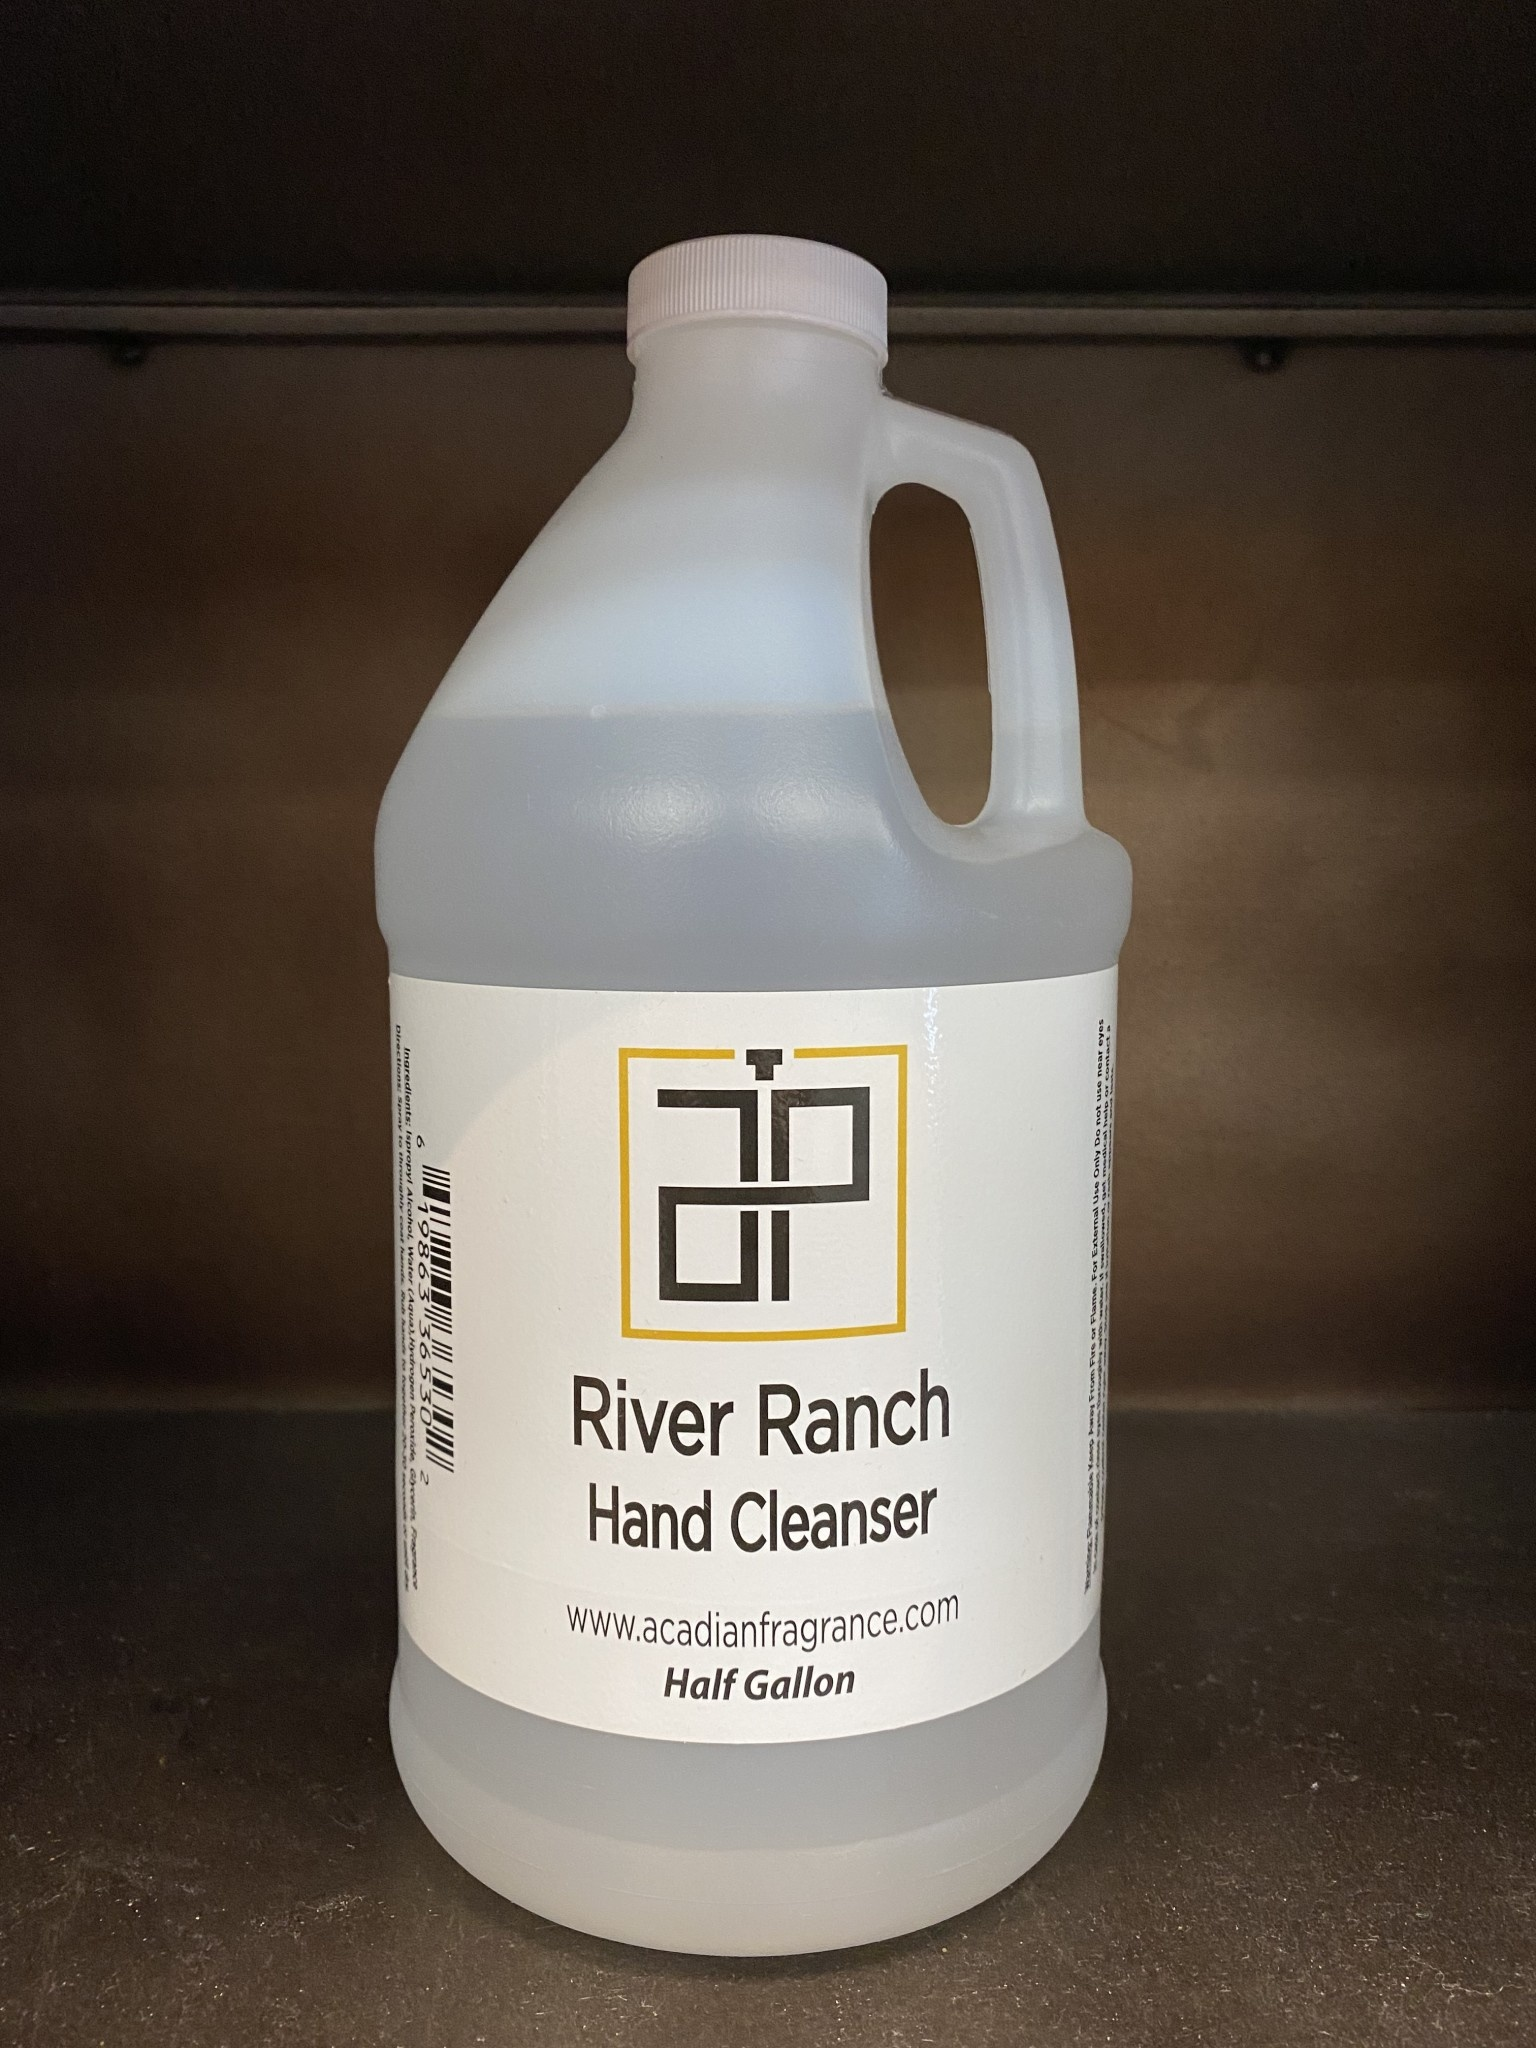 Acadian Pride Fragrance Company 1/2 Gallon River Ranch Hand Cleanser